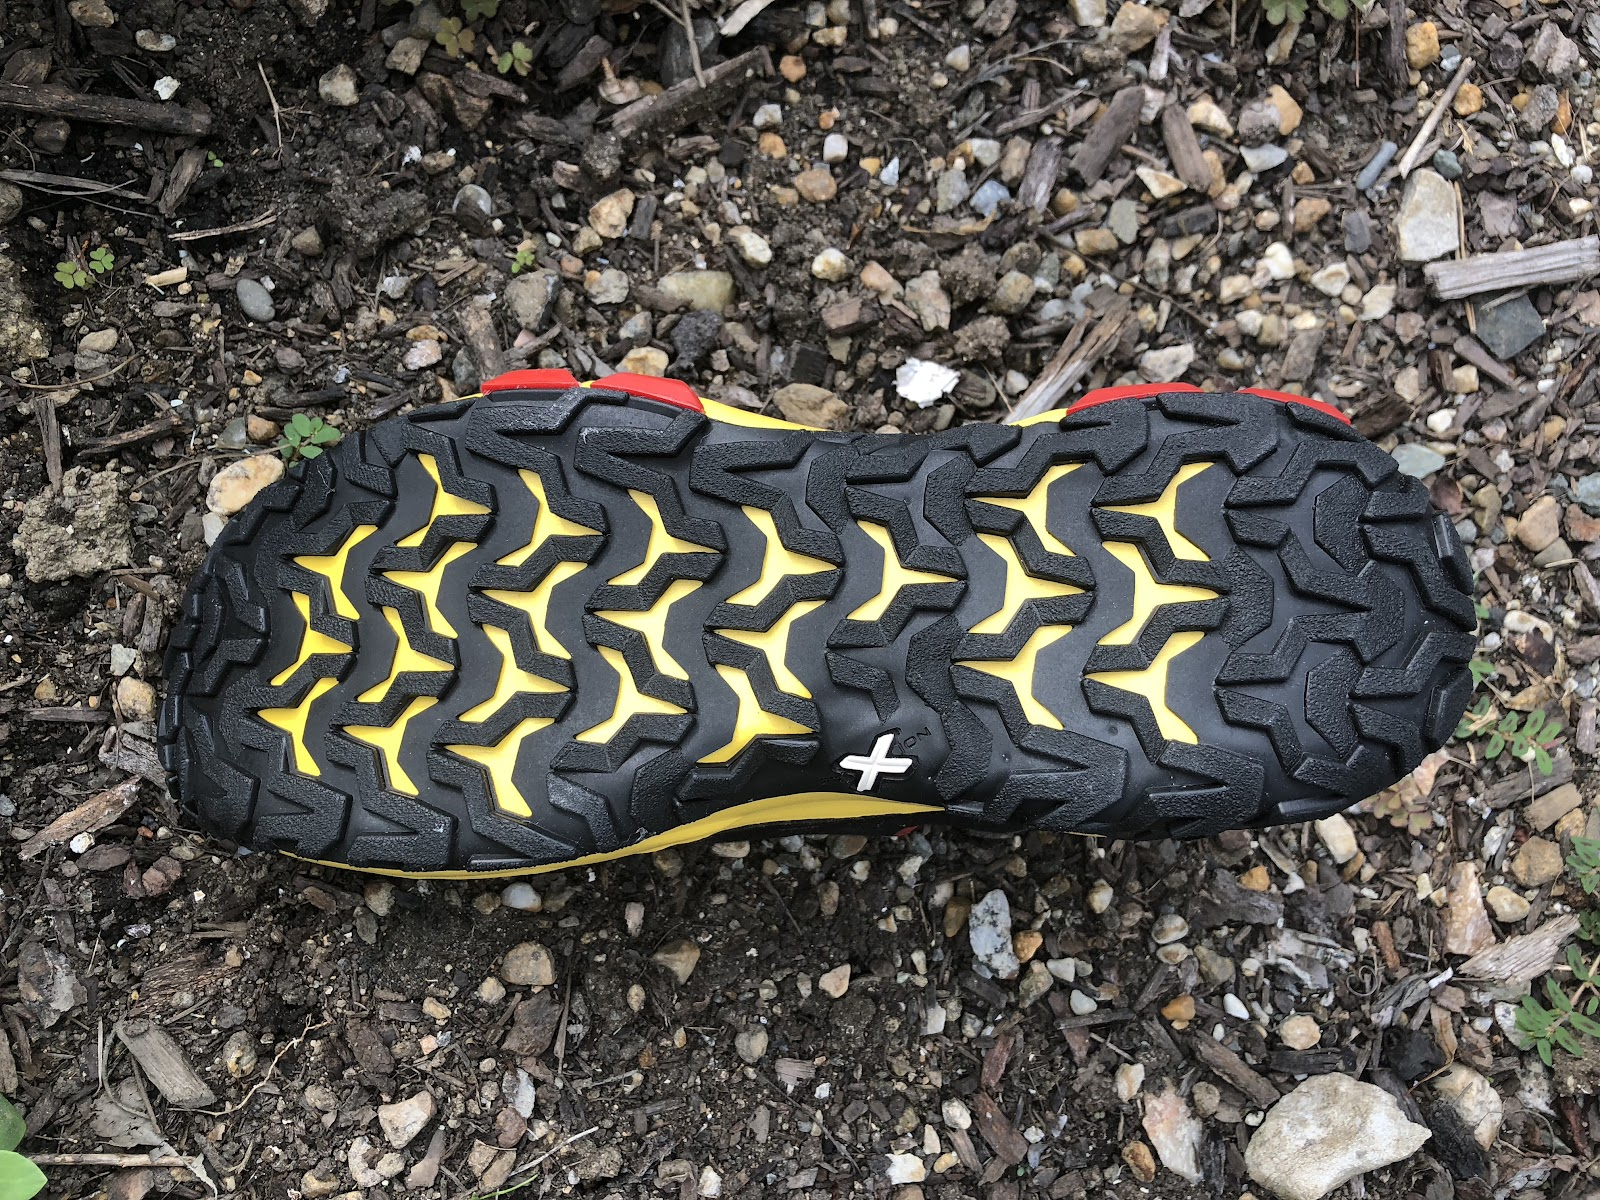 new product ed851 34e77 The higher and denser coverage around the rim also stabilize the ride while  the full coverage at the toe is for wear and to provide some rock  protection ...